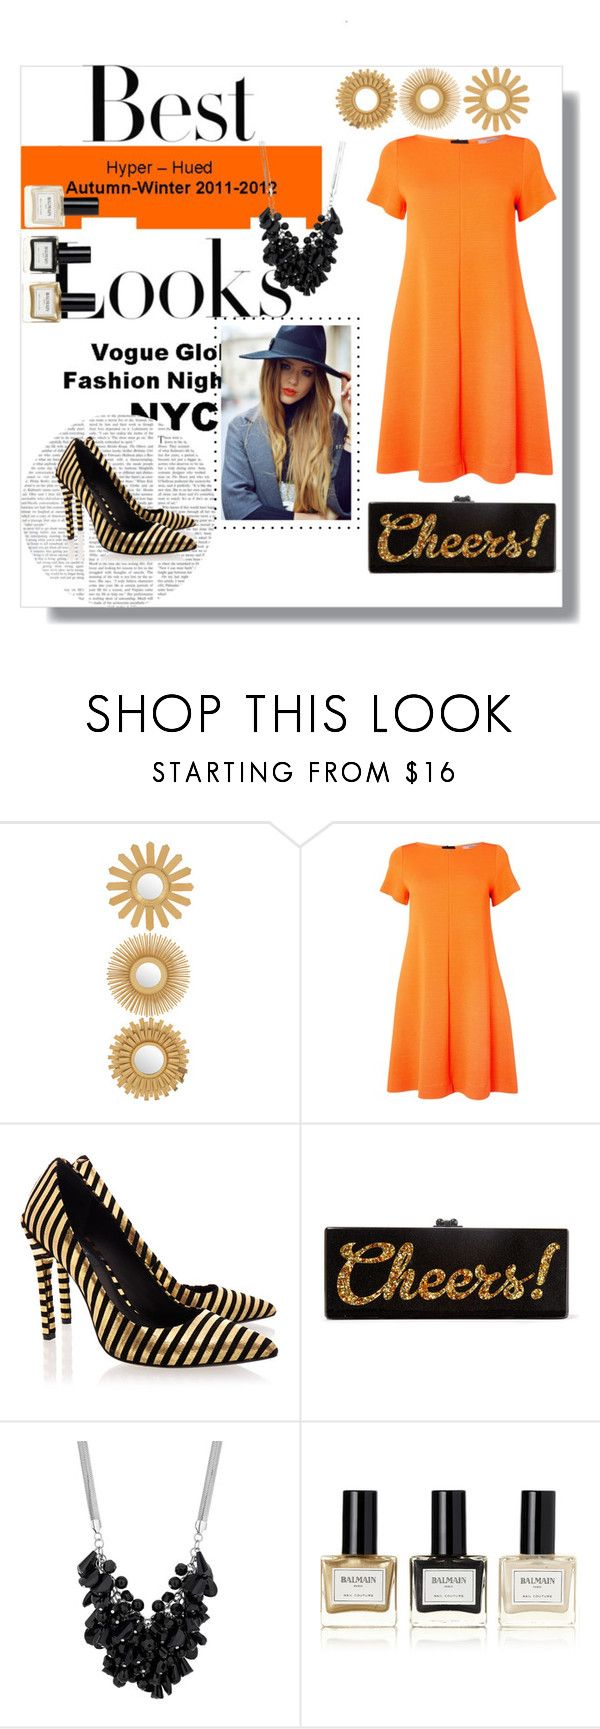 """A Clockwork Orange ✌️"" by violin-player-12 ❤ liked on Polyvore featuring MML, Marella, Rachel Zoe, Edie Parker, Betty Jackson, Balmain, women's clothing, women's fashion, women and female"